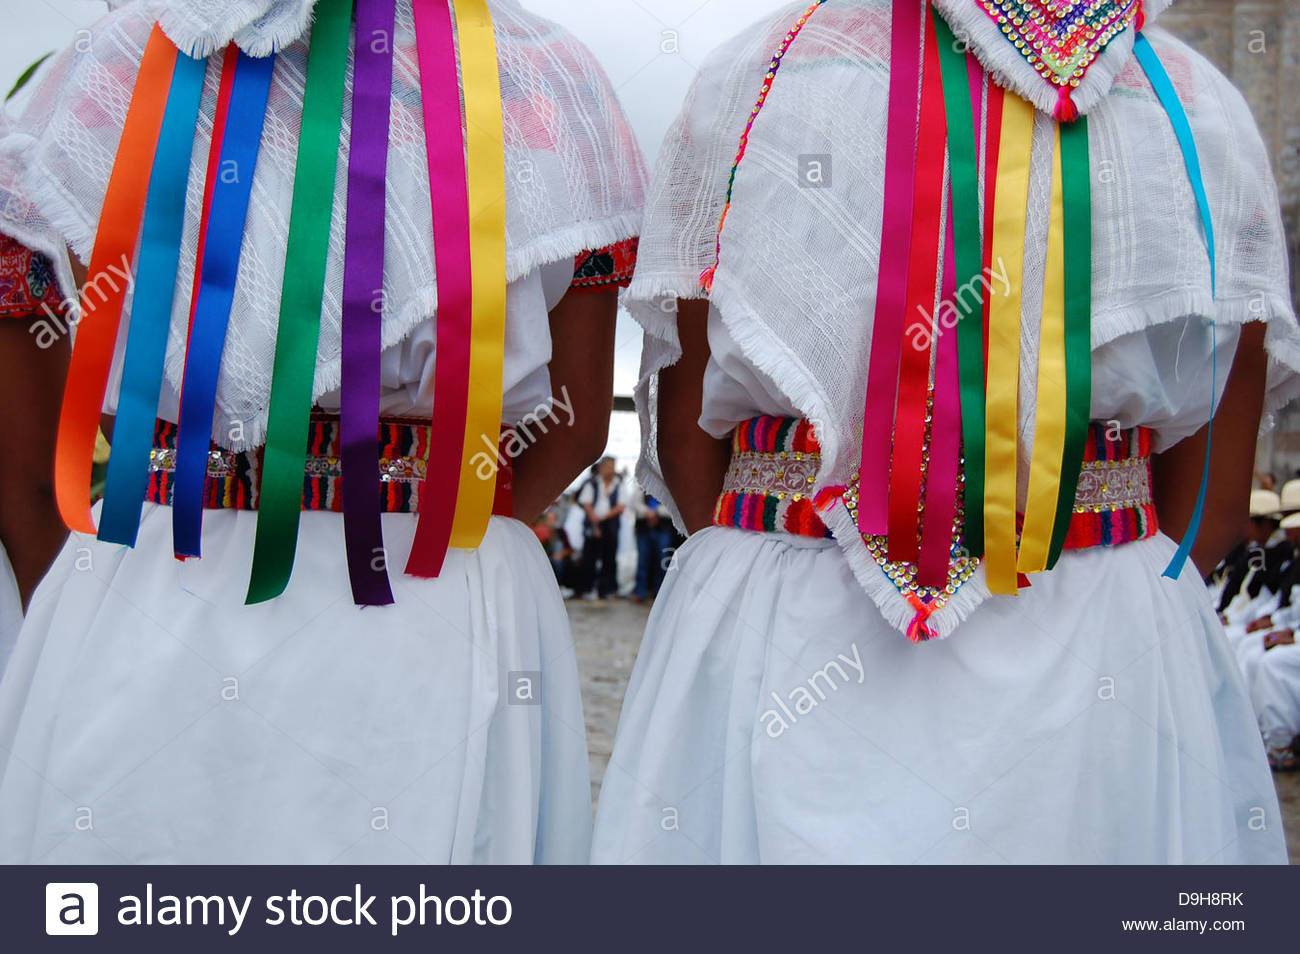 Closeup outdoor rear view  hand made indigenous Nahua Mexican womans womens  clothing showing colorful details - Stock Image